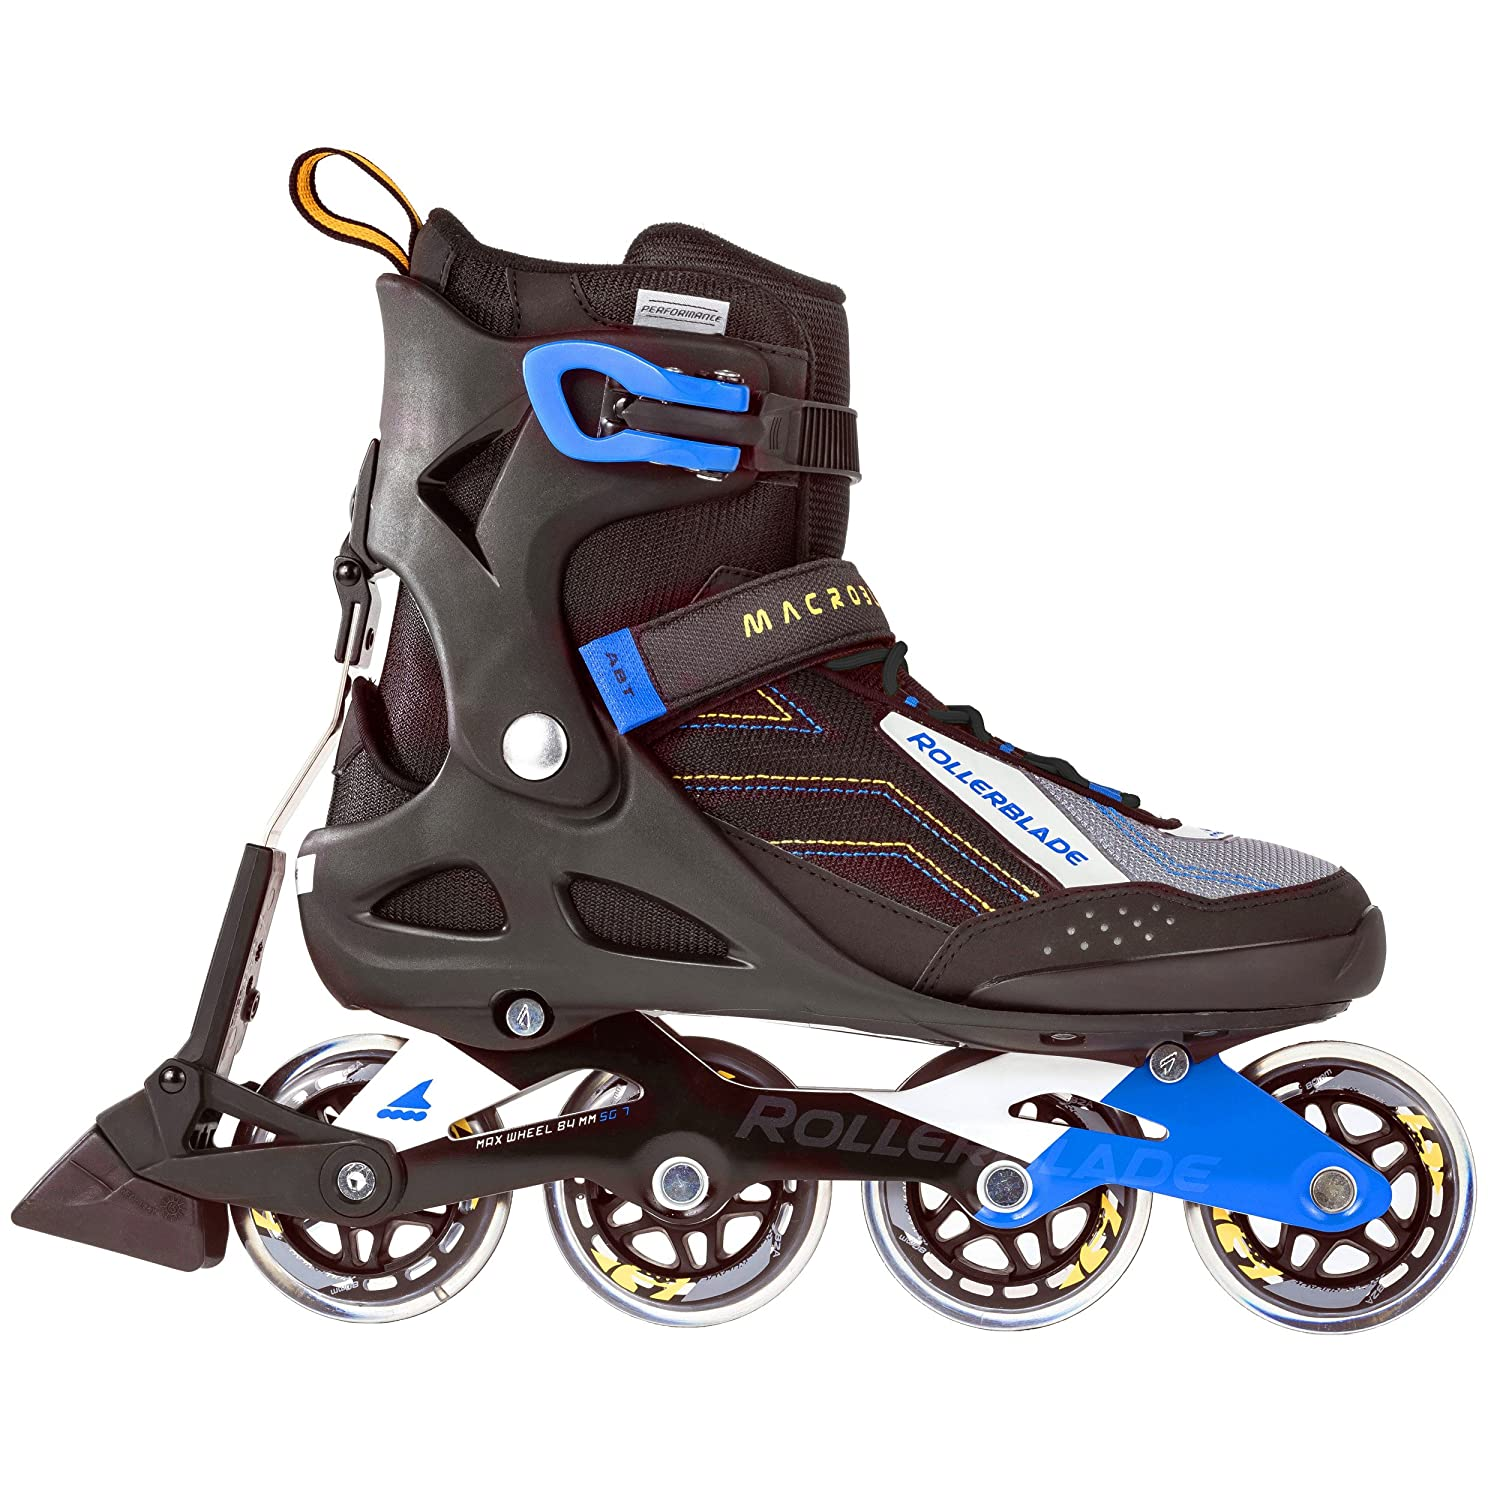 579044b5af1 Amazon.com : Rollerblade Men's Macroblade 80 ABT Skates : Sports & Outdoors